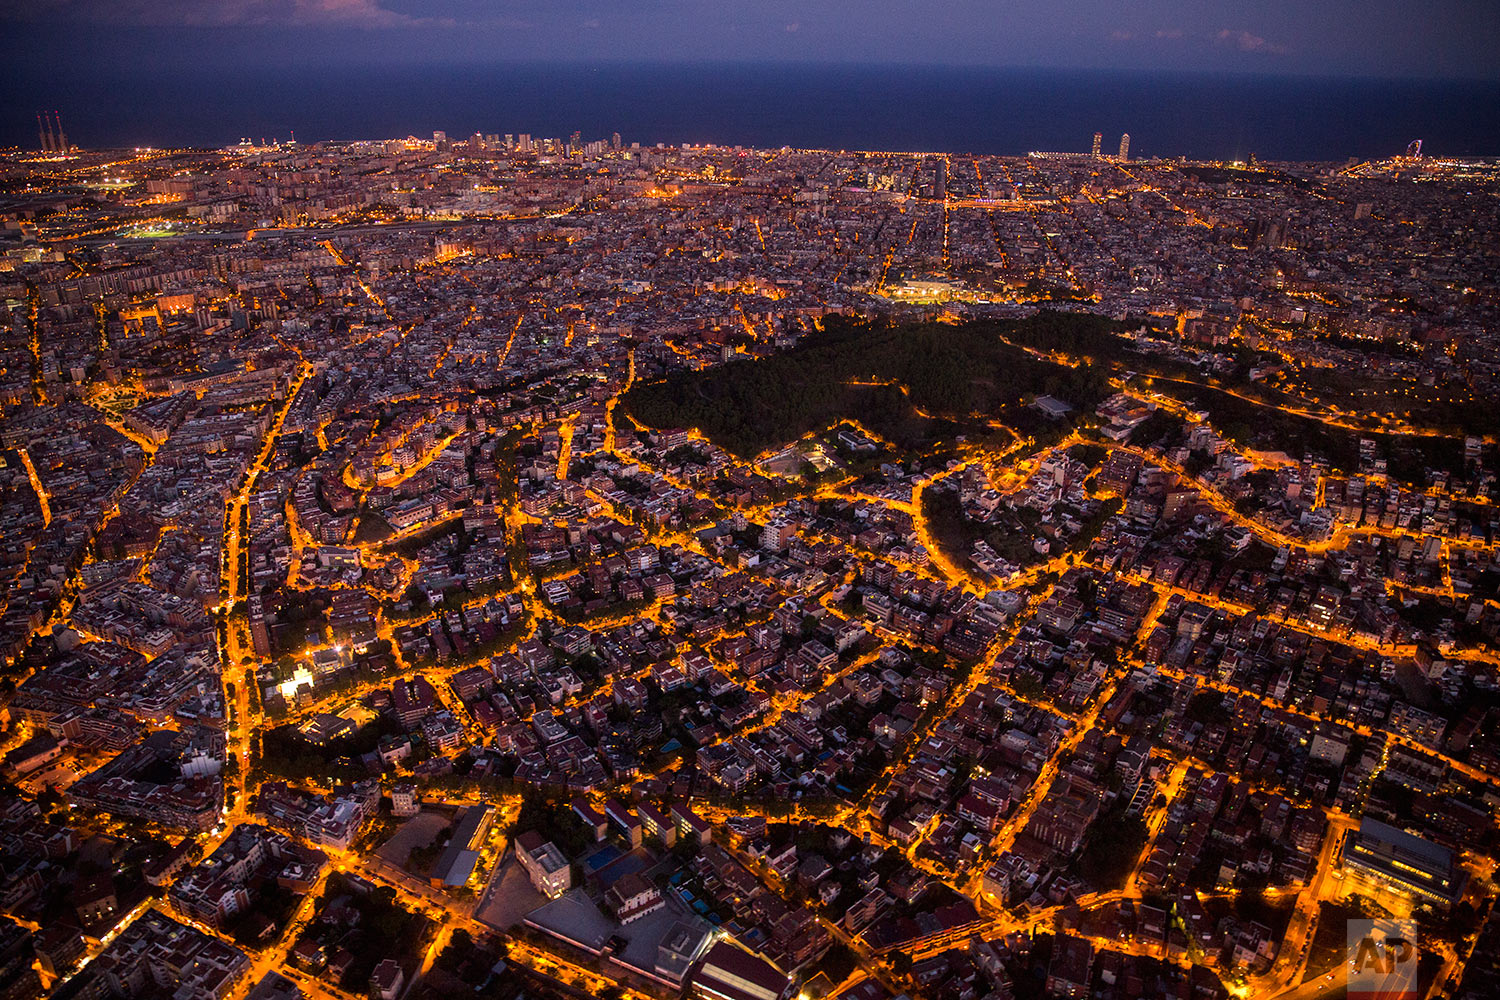 In this Tuesday, Sept. 19, 2017 photo, an aerial view of the city of Barcelona, Spain taken from a patrol in a helicopter of the Catalan Mossos d'Esquadra. (AP Photo/Emilio Morenatti)